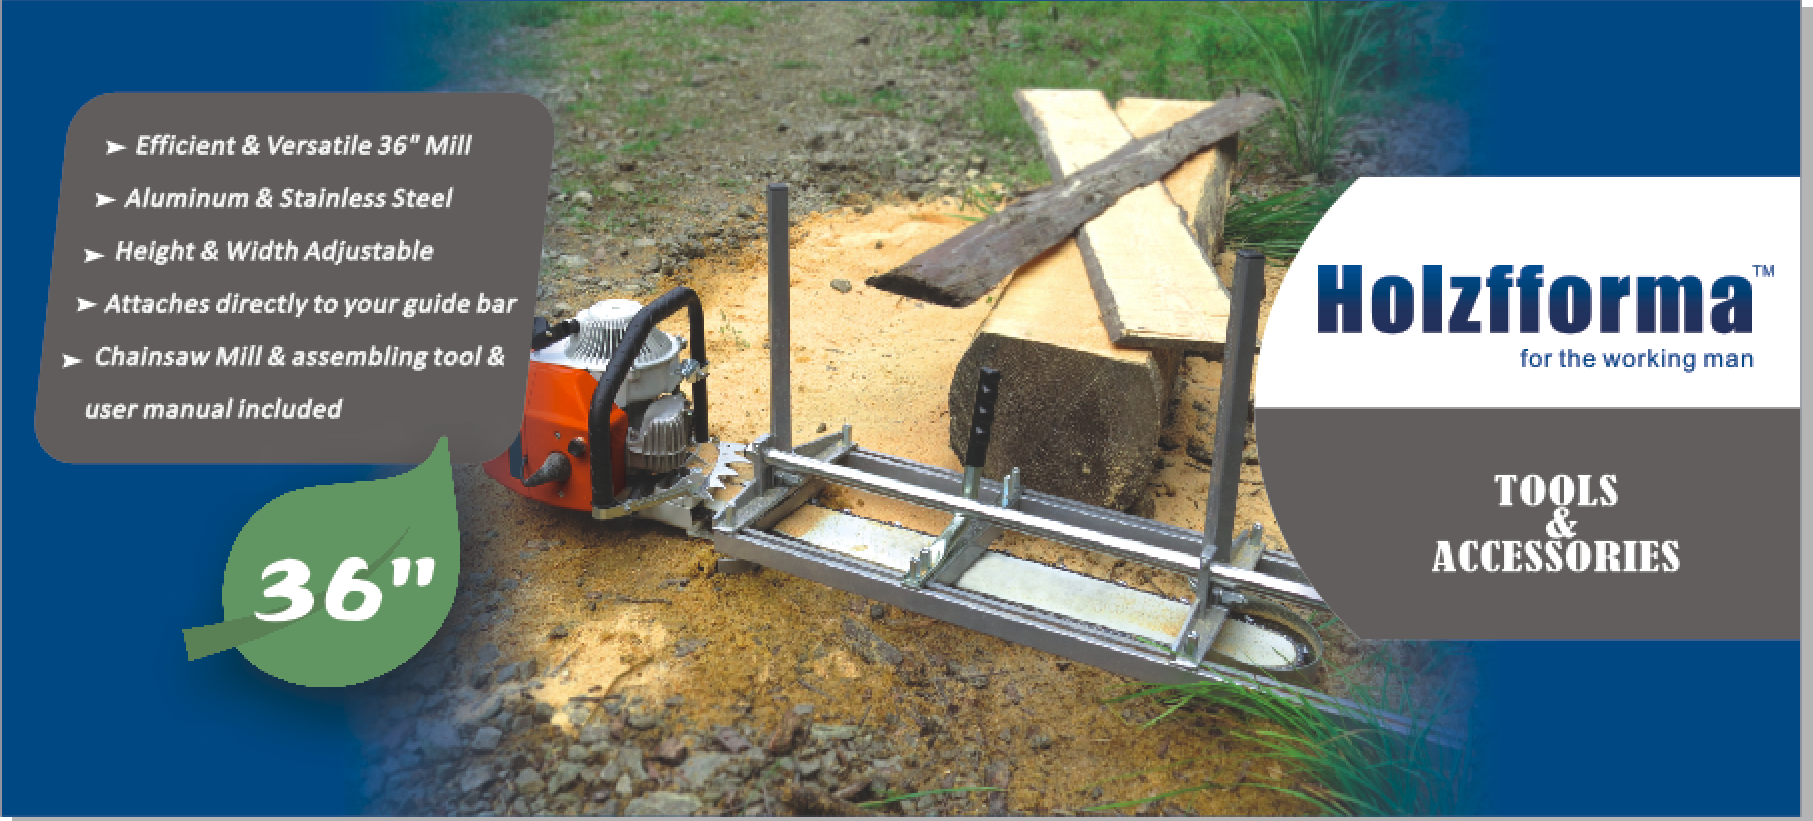 36 Inch Holzfforma Portable Chainsaw Mill Planking Milling From 14 Husqvarna 325 Engine Diagram Note The And Guide Bar Are Not Included